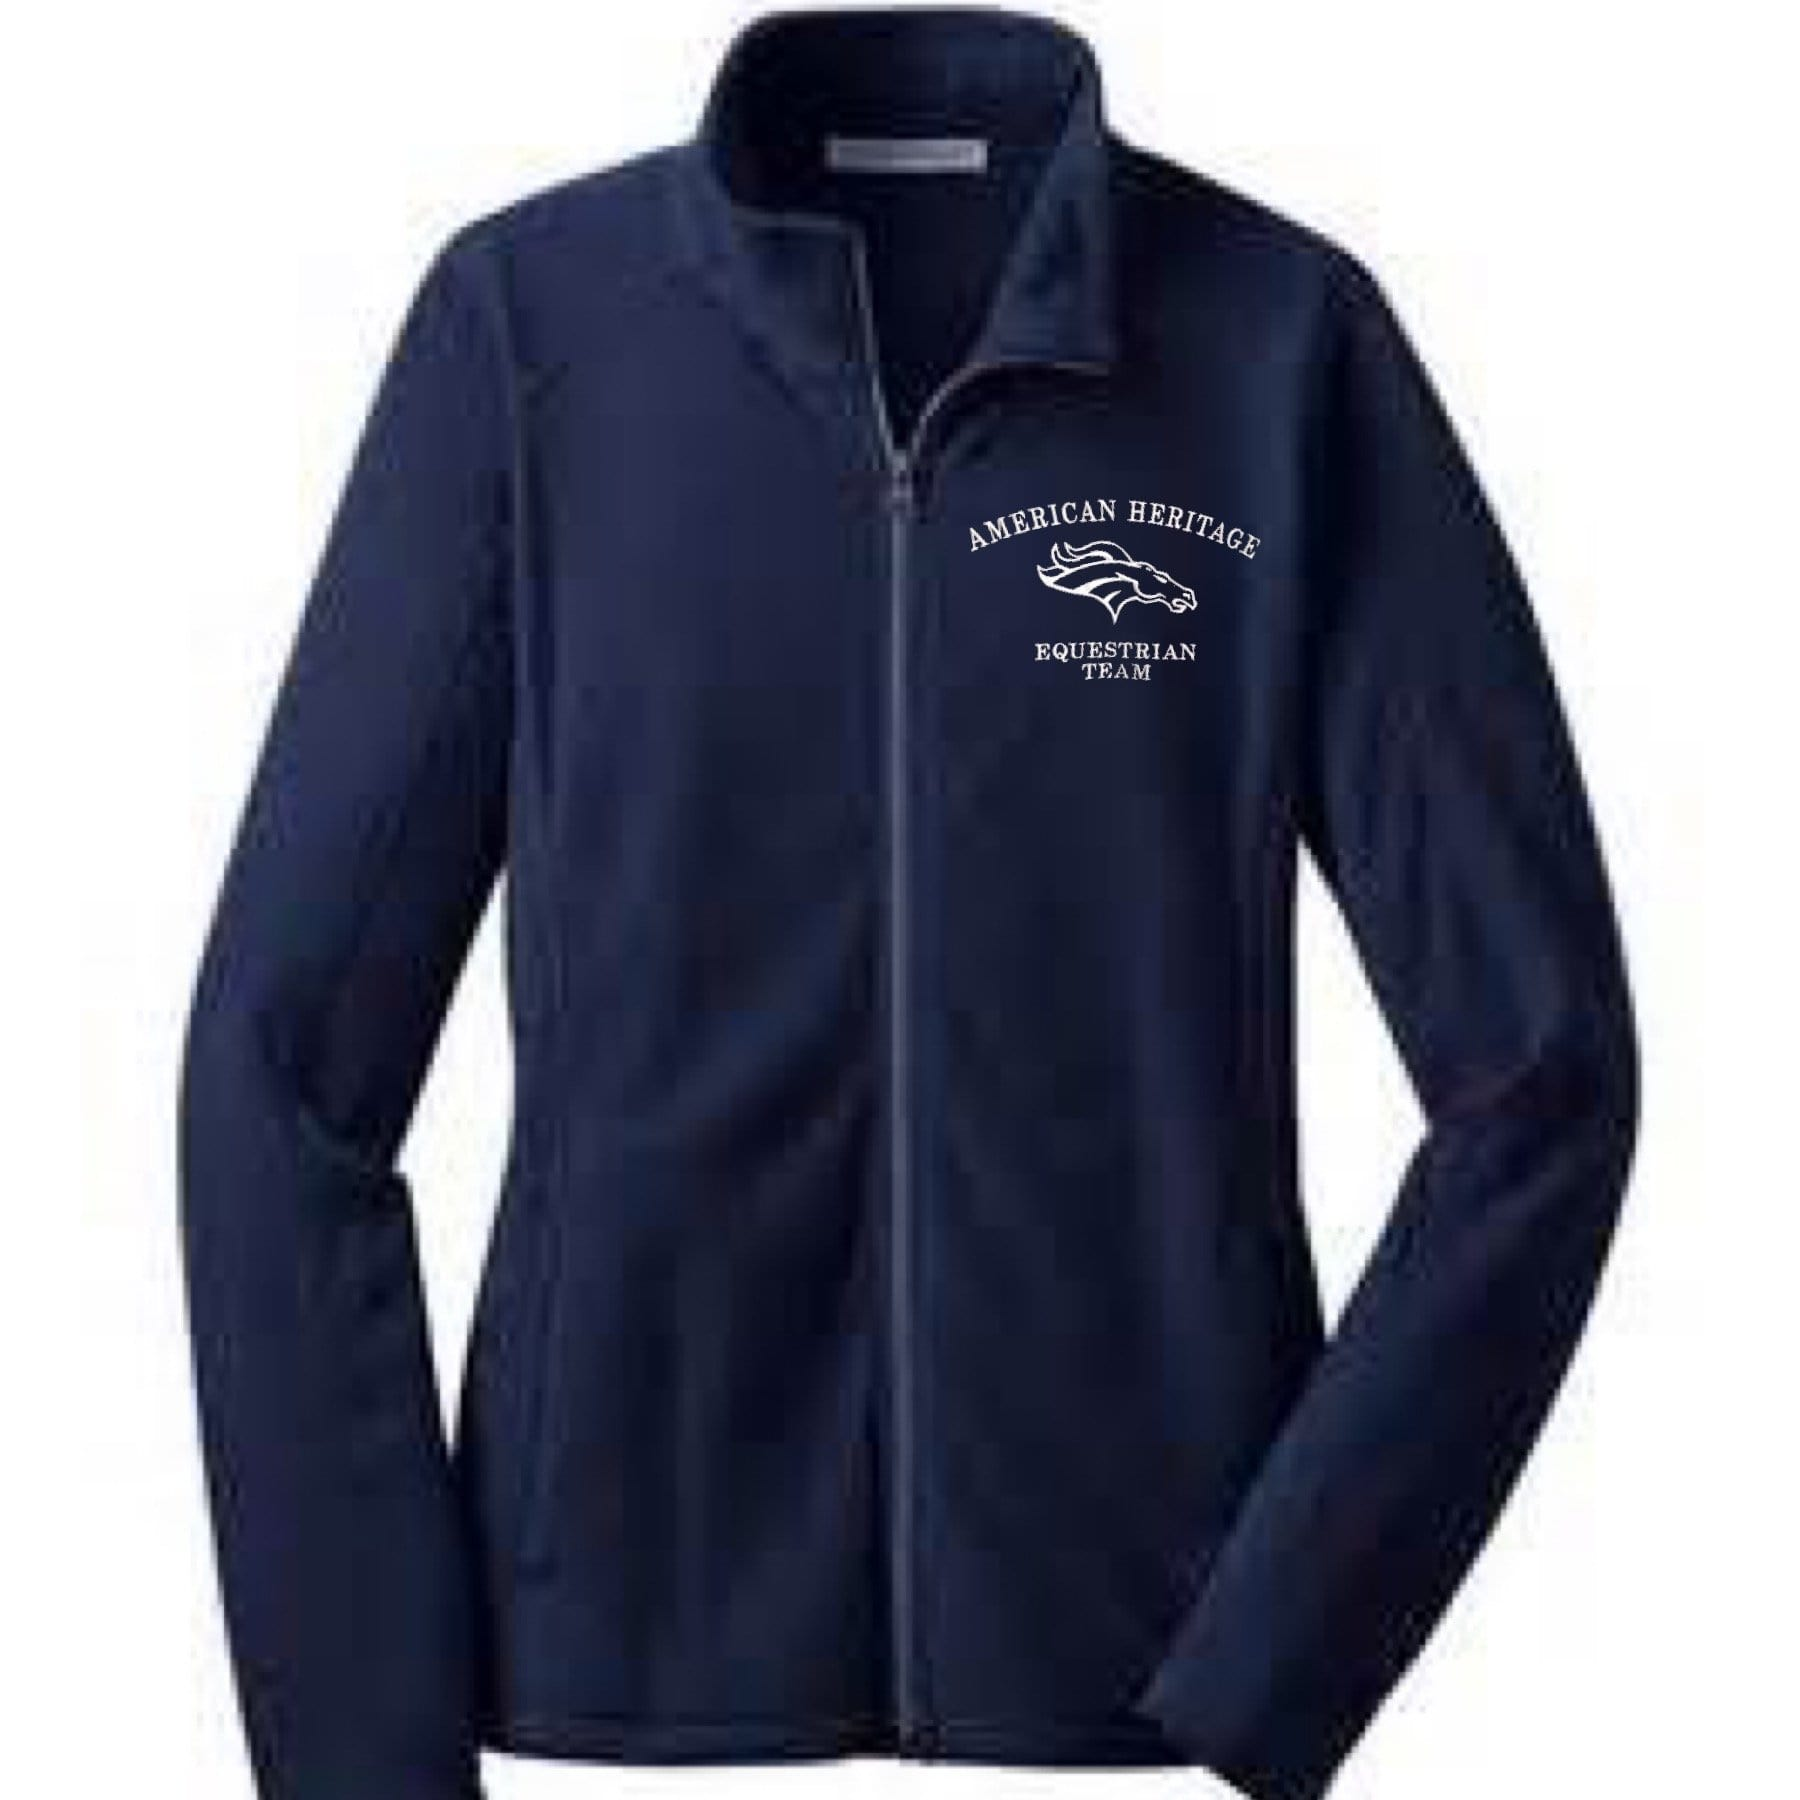 Equestrian Team Apparel Custom Team Shirts XS / Navy / Name American Heritage IEA Fleece Jacket equestrian team apparel online tack store mobile tack store custom farm apparel custom show stable clothing equestrian lifestyle horse show clothing riding clothes horses equestrian tack store